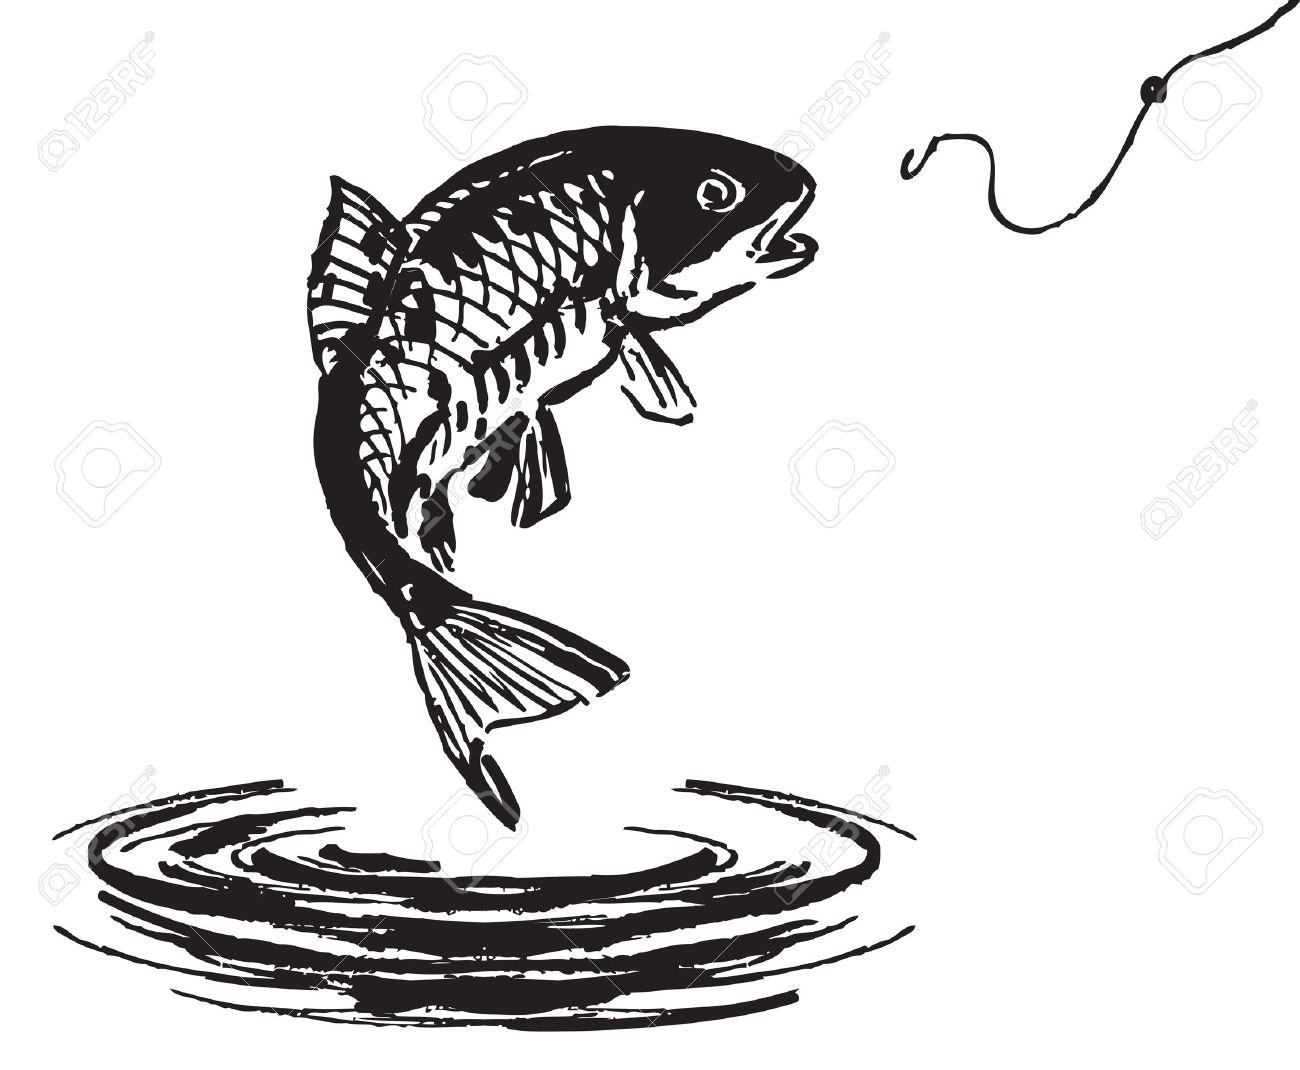 Fish jumping out of the water. Vector illustration..